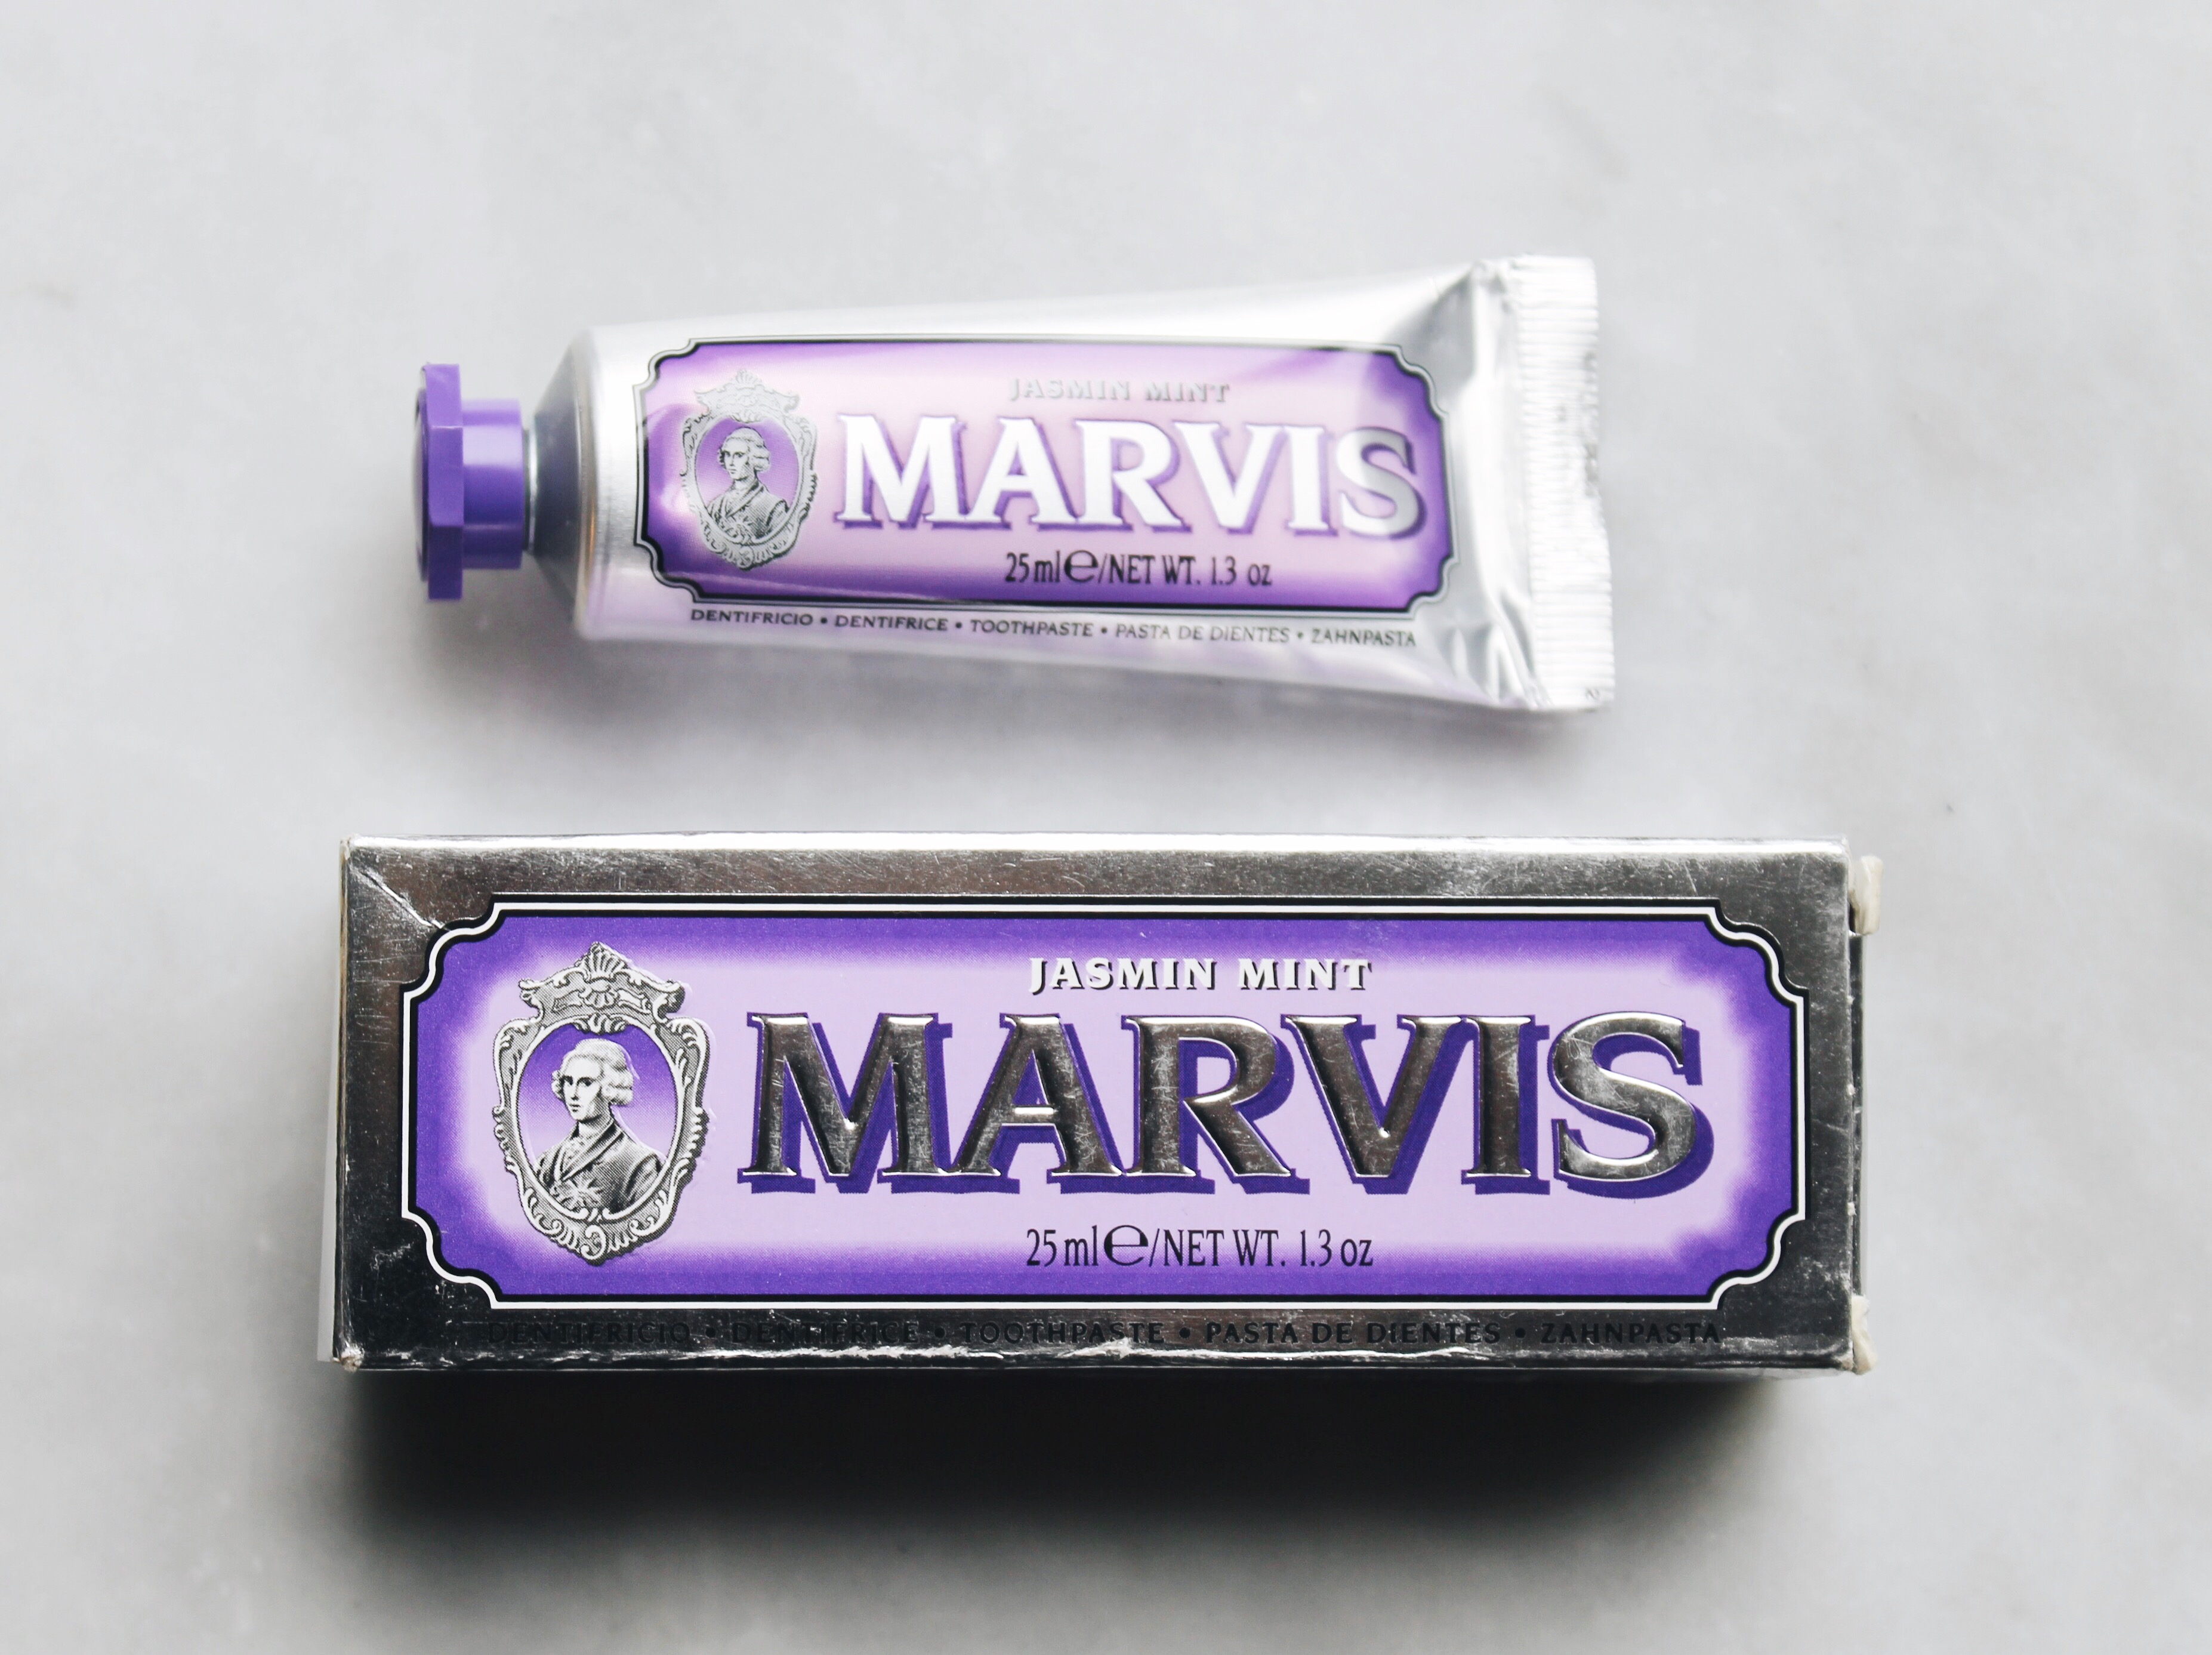 Marvis Toothpaste Jasmin Mint Review, Marvis Jasmin Mint, Marvis Toothpaste Review, Marvis Review, Travel Sized Toothpaste